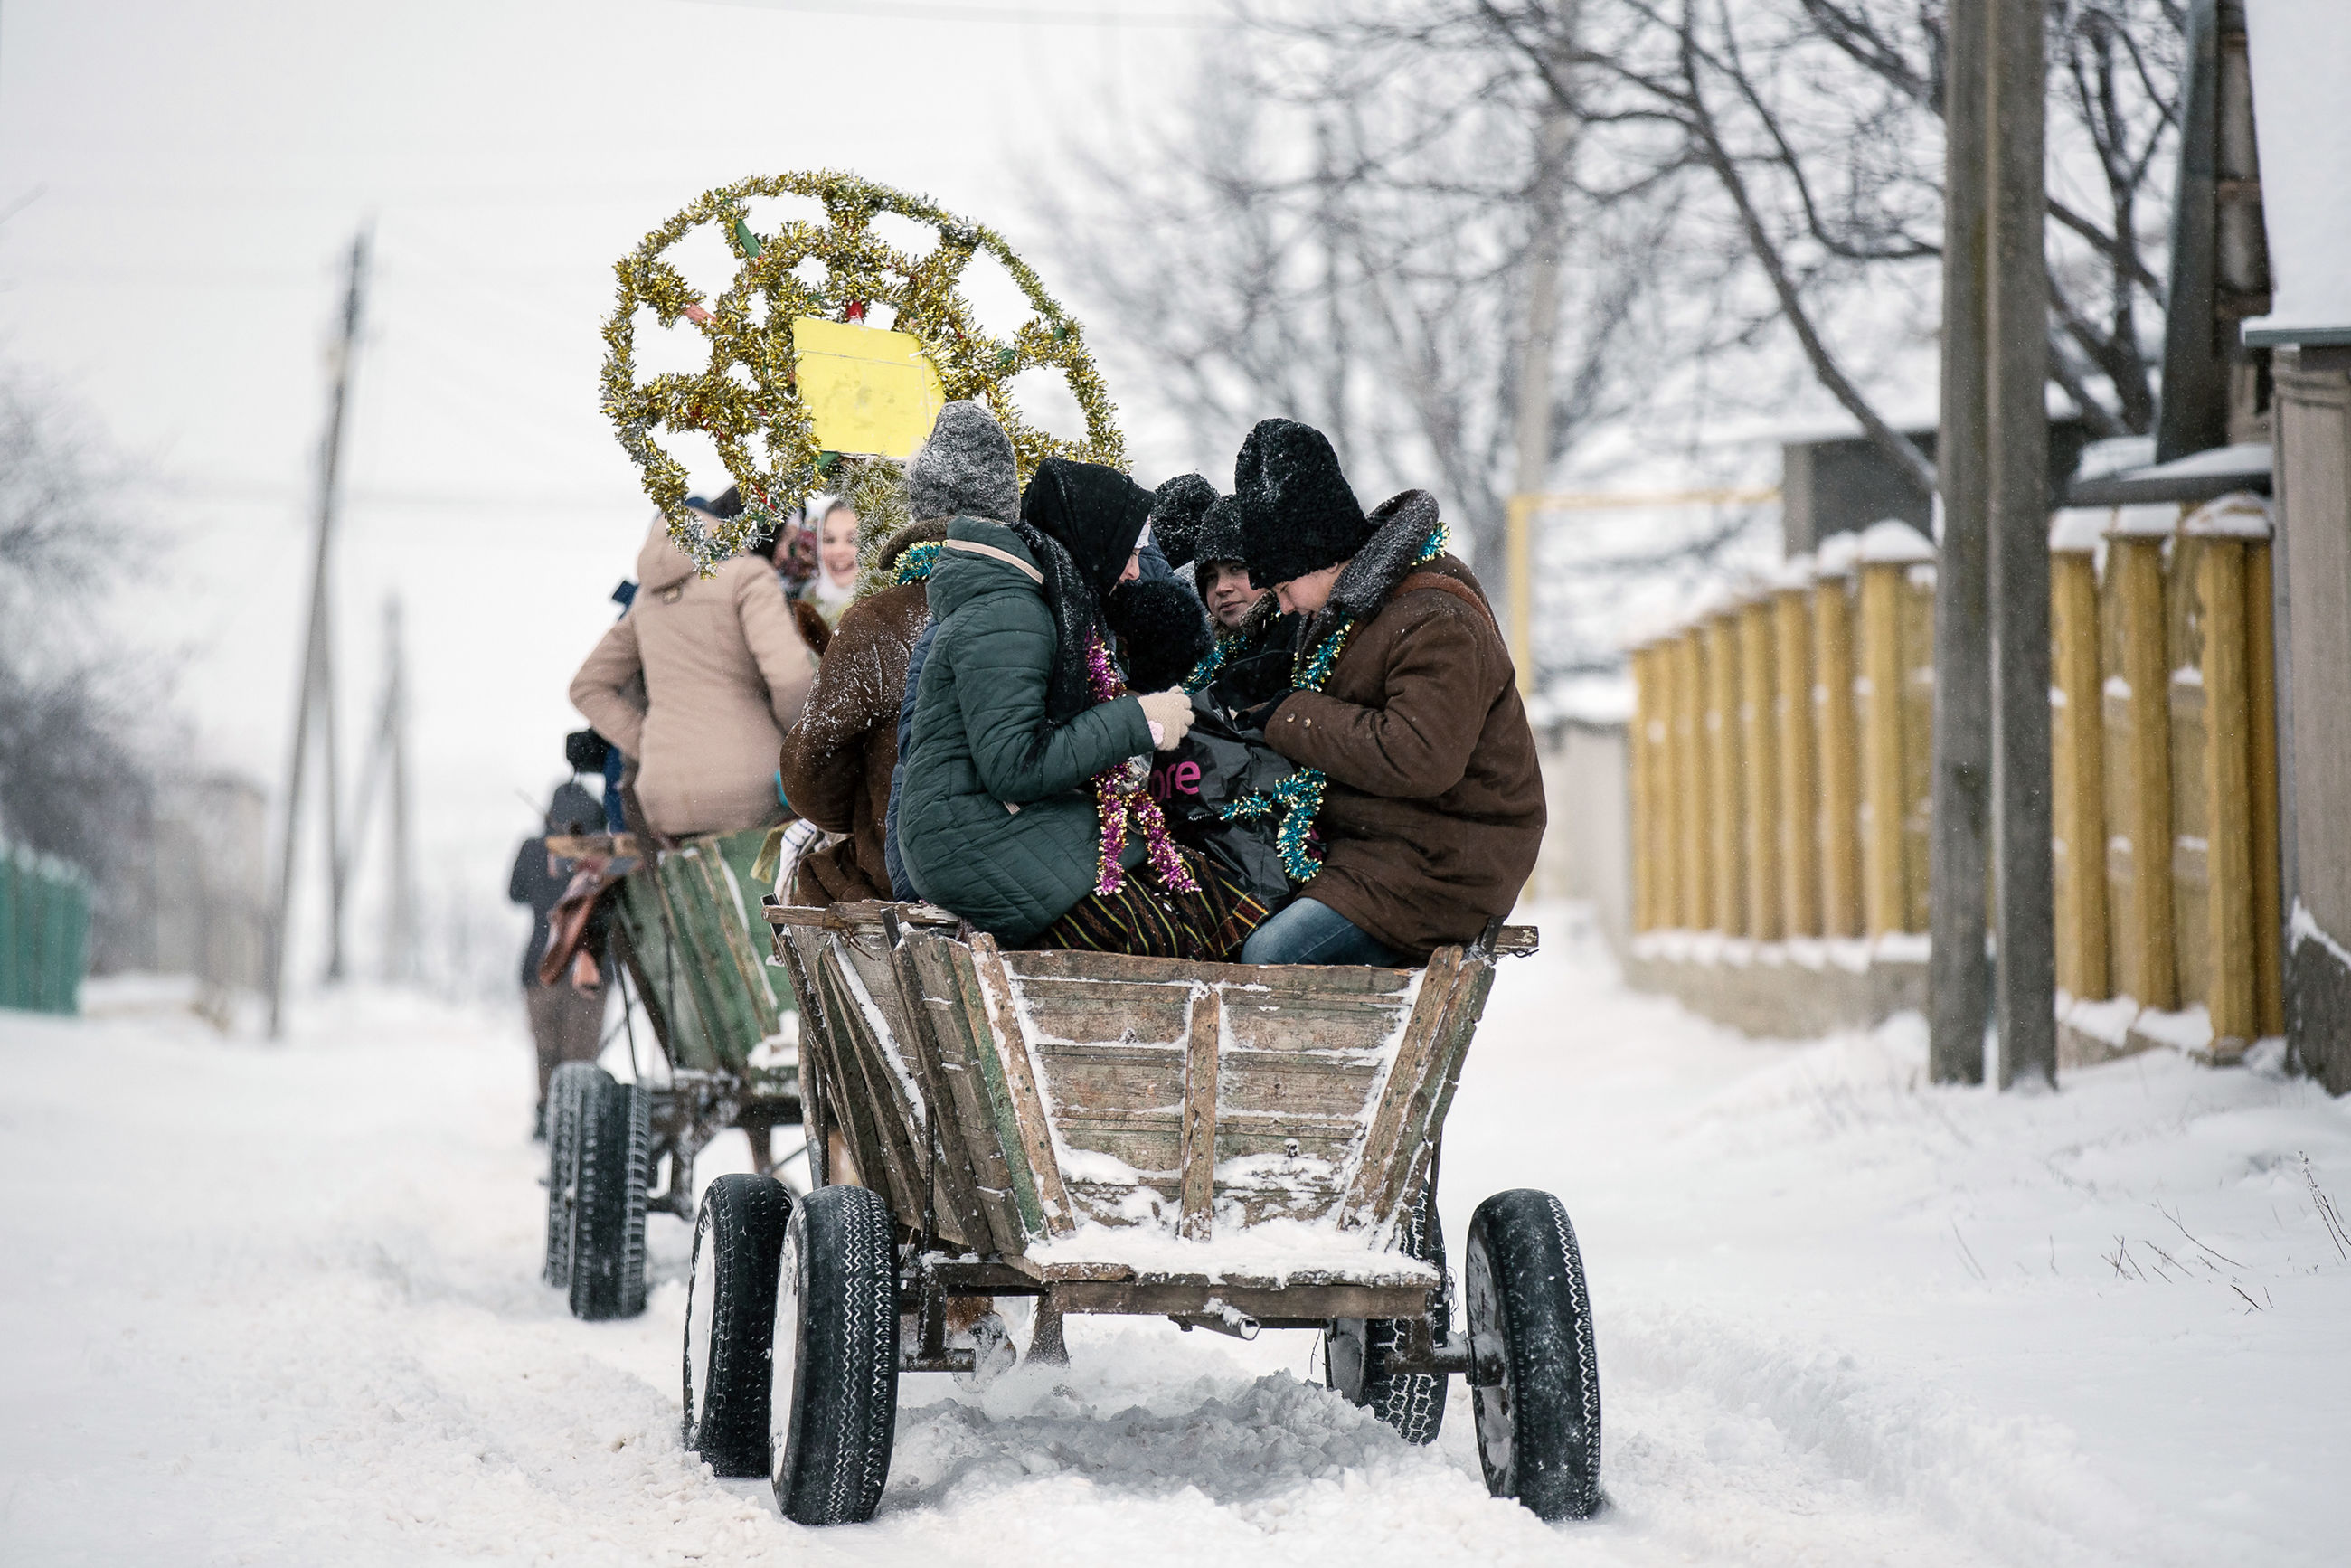 winter, cold temperature, snow, warm clothing, real people, nature, tree, transportation, mode of transportation, bare tree, domestic, day, pets, domestic animals, clothing, mammal, people, outdoors, extreme weather, riding